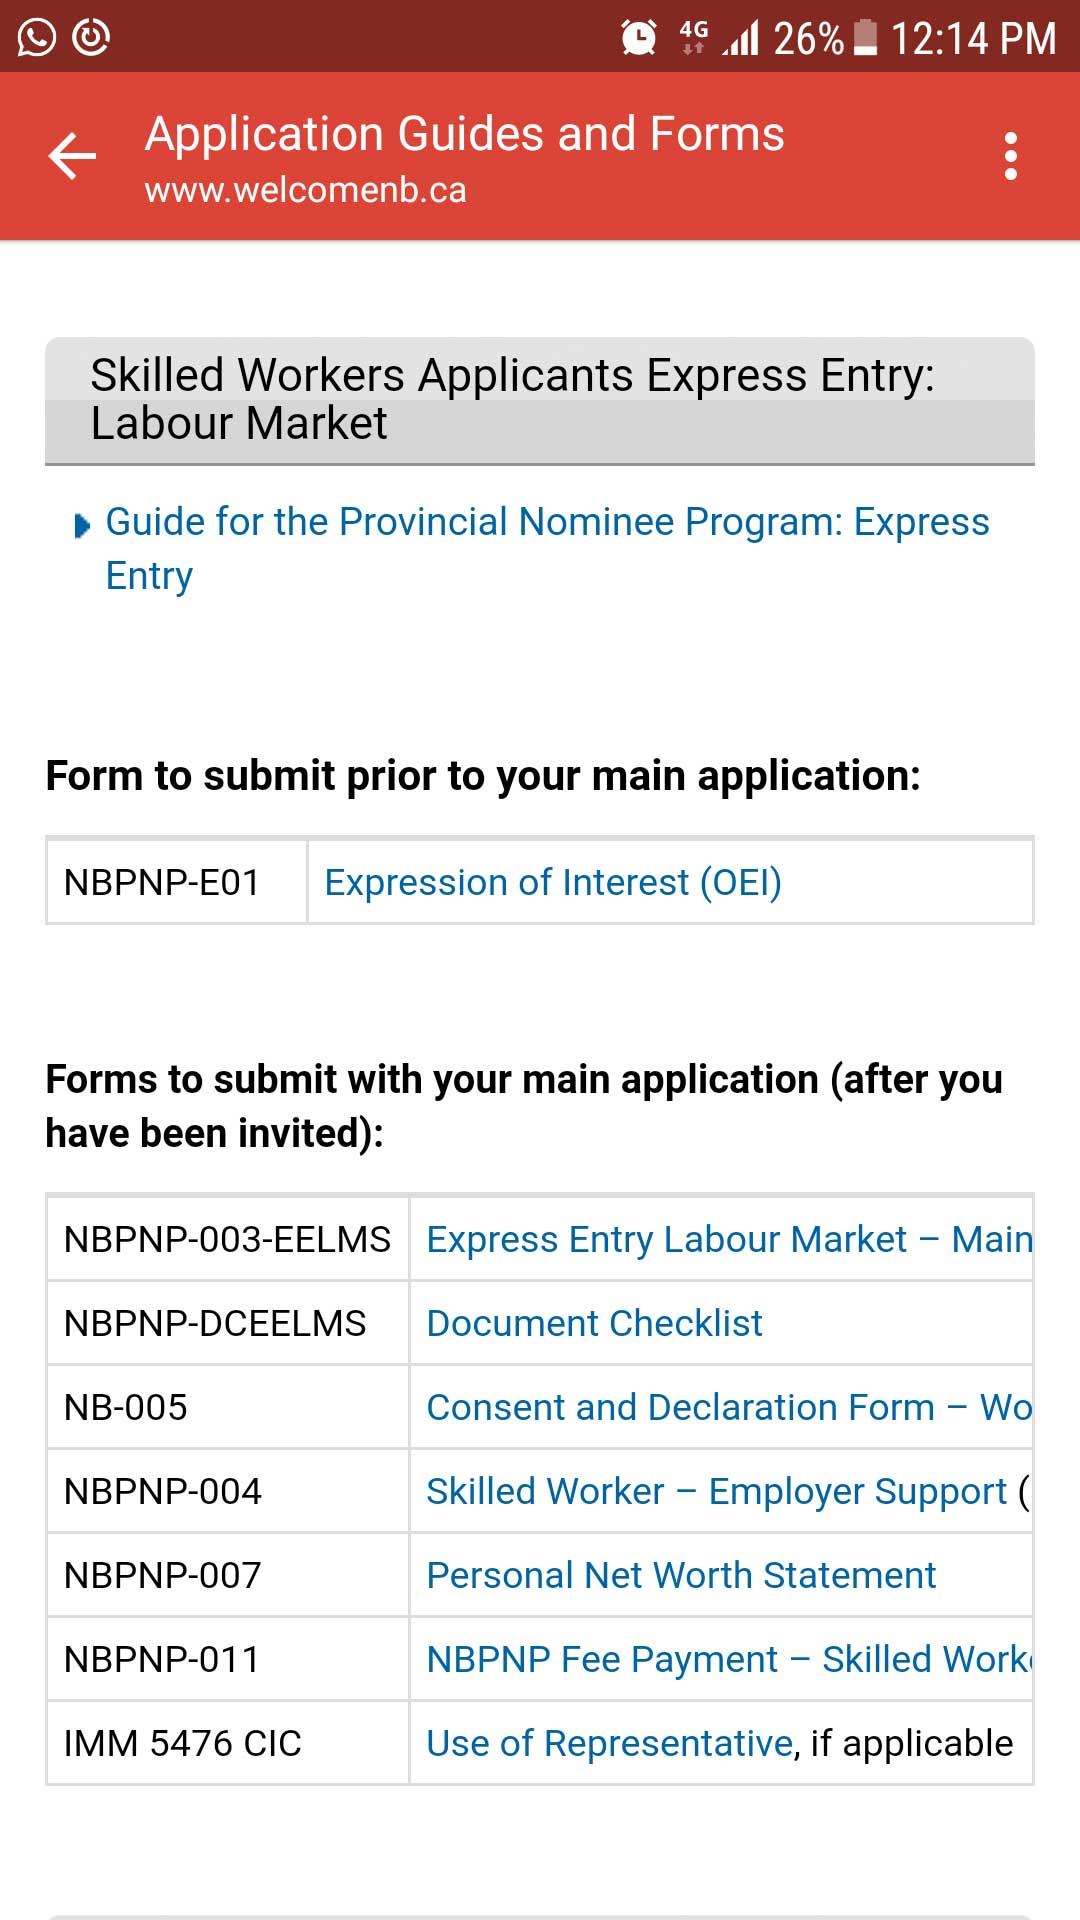 Nbpnp full application forms and documents blekxy world nbpnp full application forms and documents needed xflitez Choice Image